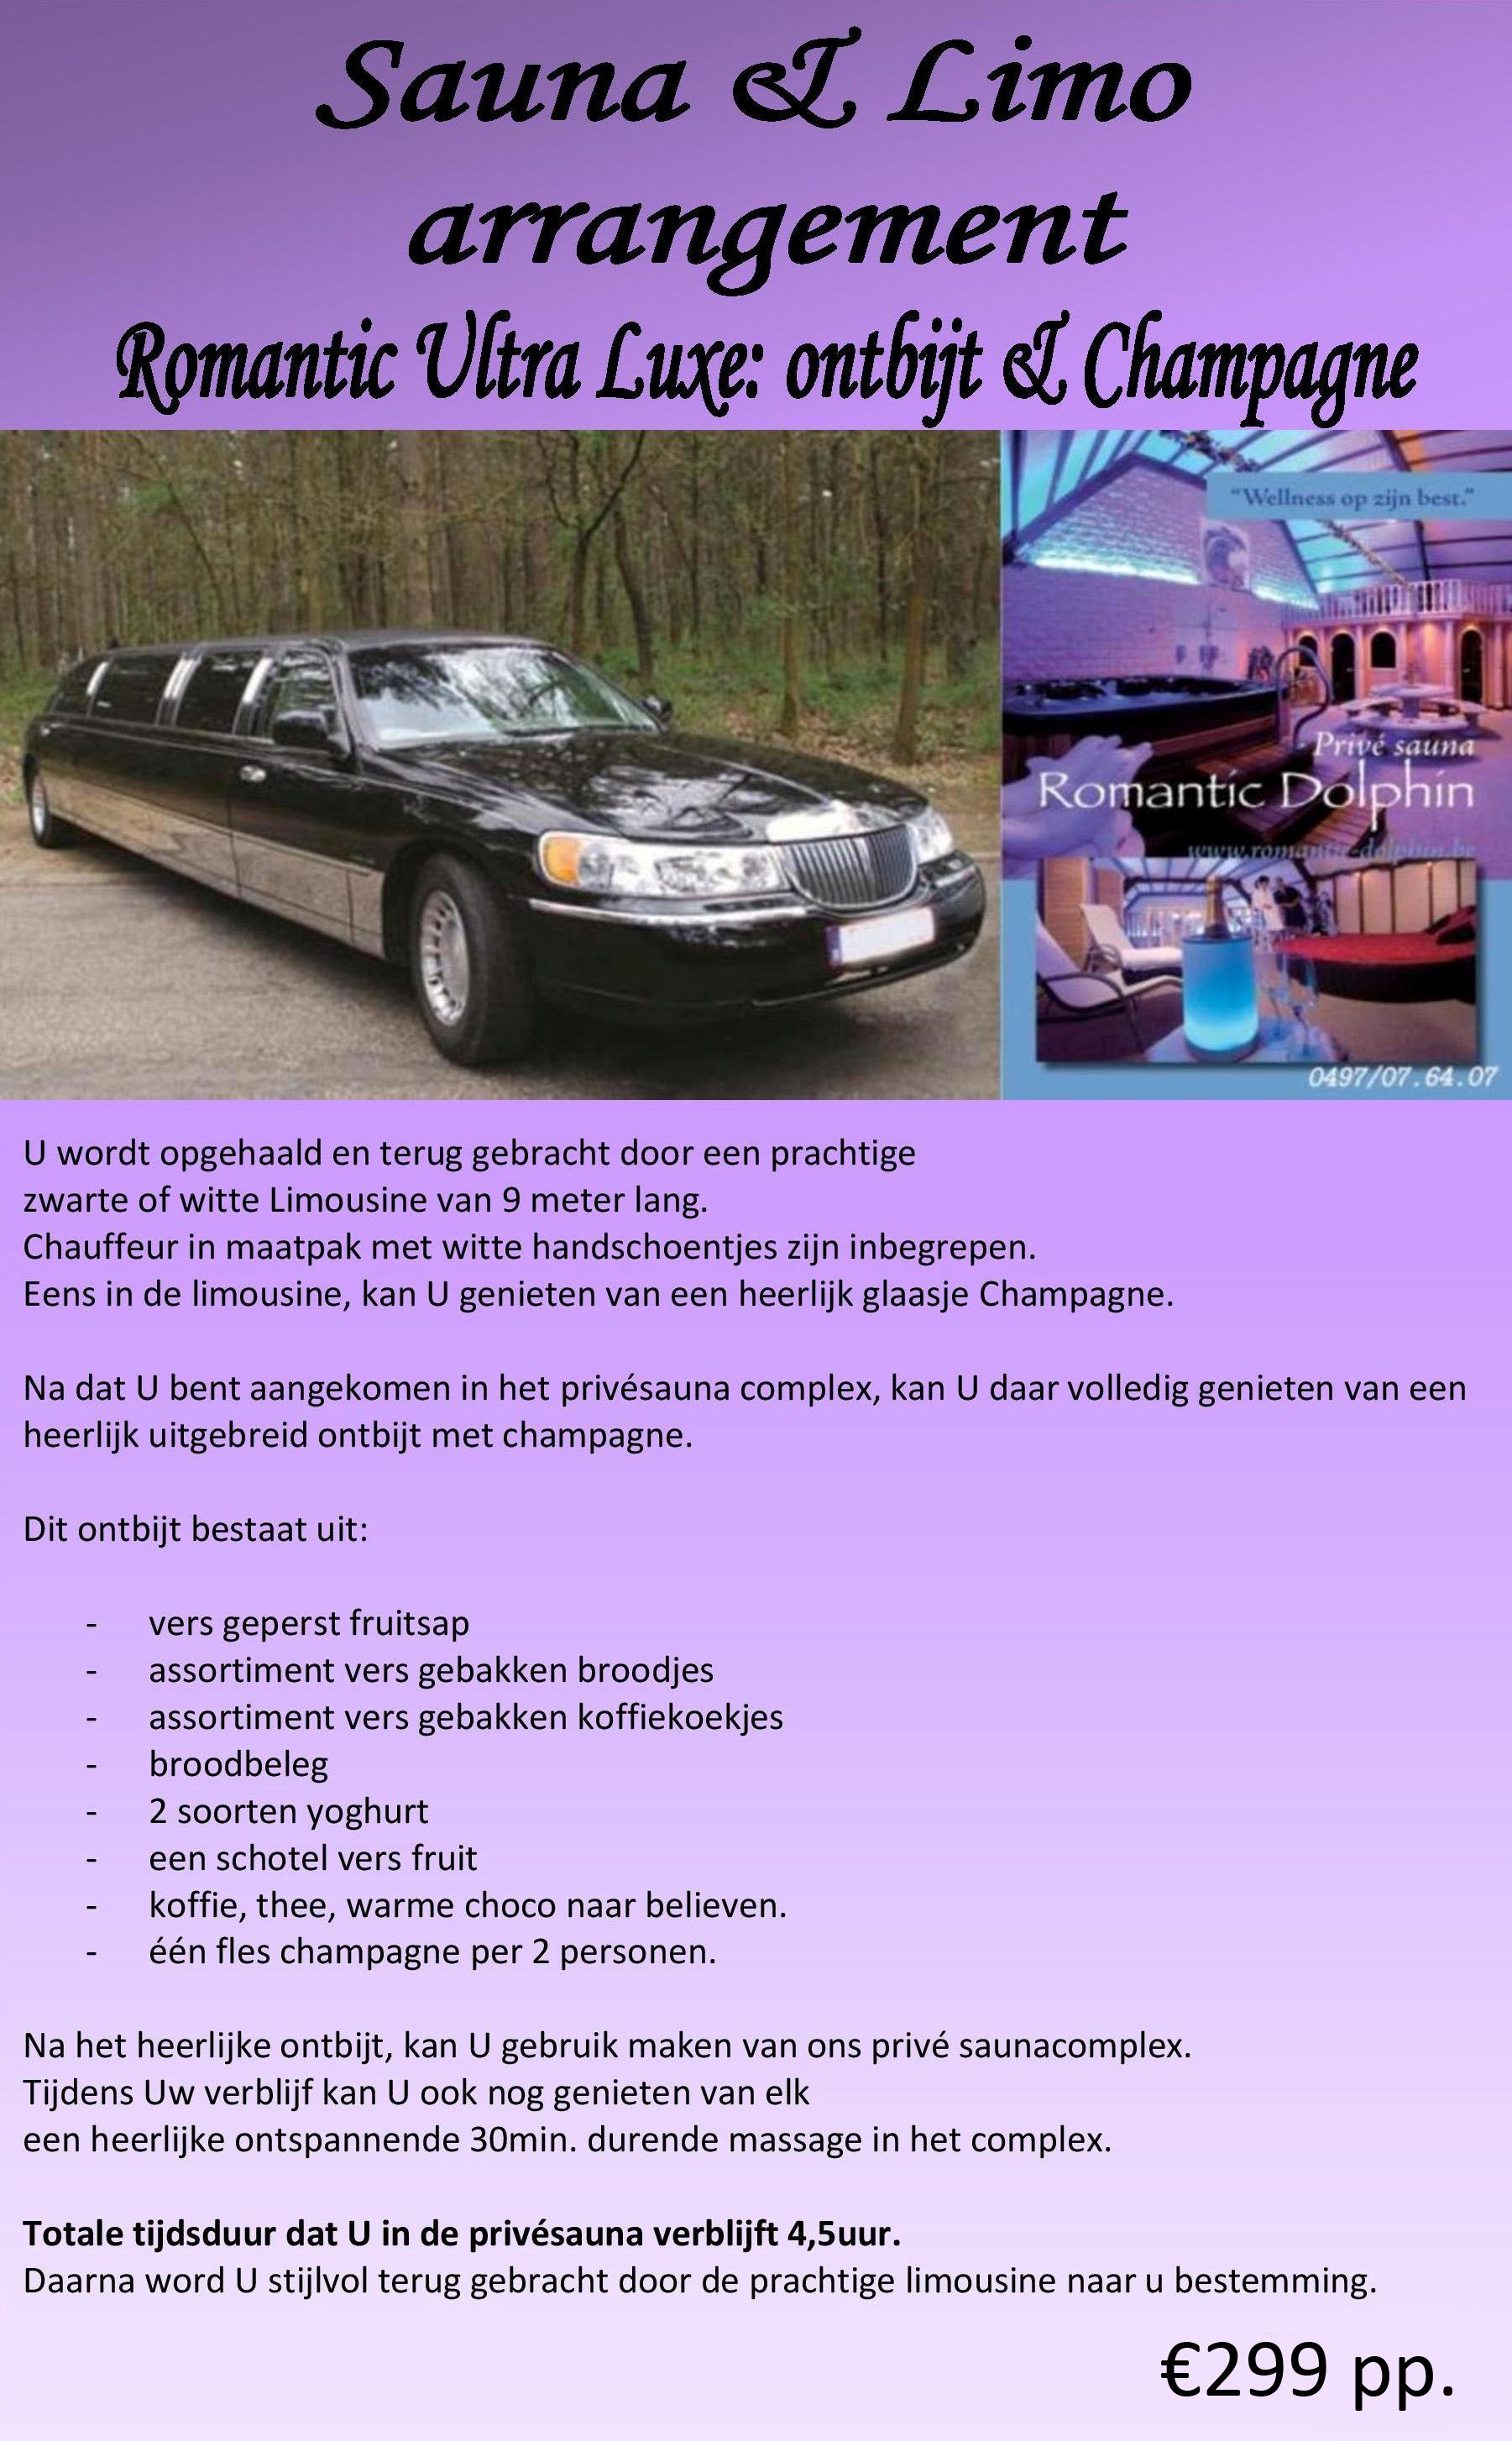 Sauna & Limo arrangement Ultra Lux - Romantic Schotel